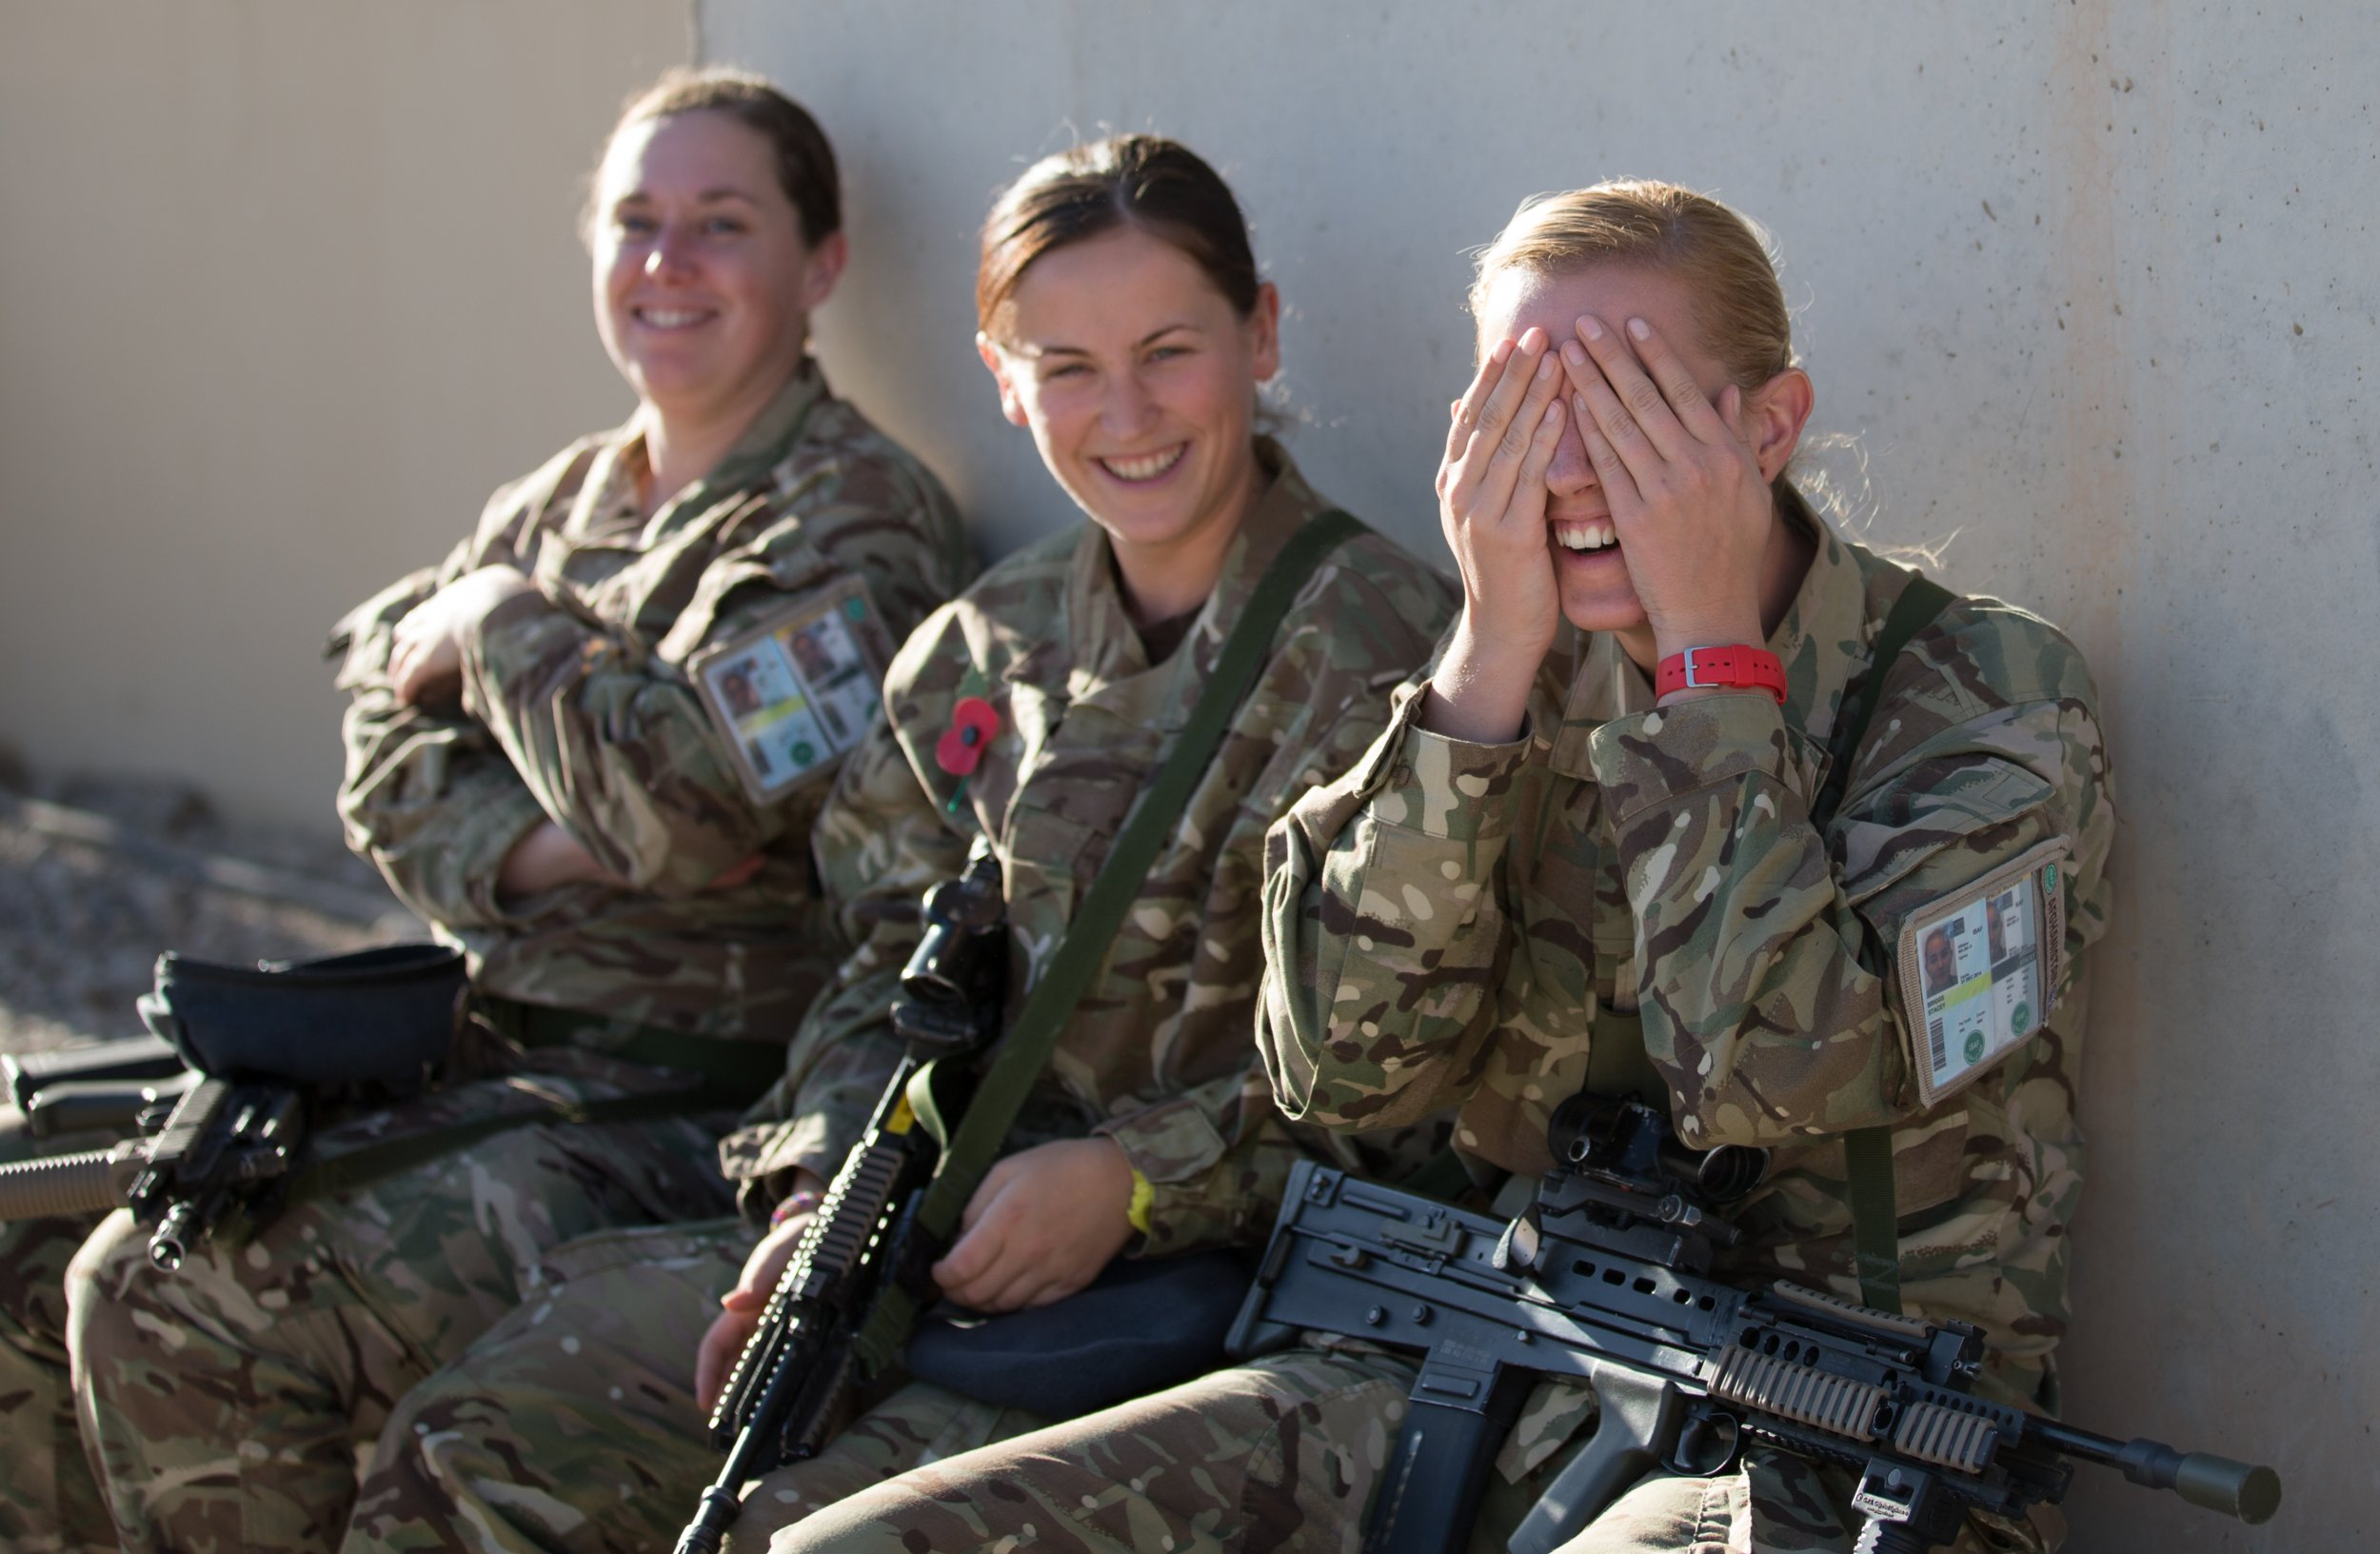 British female soldiers in Afghanistan.